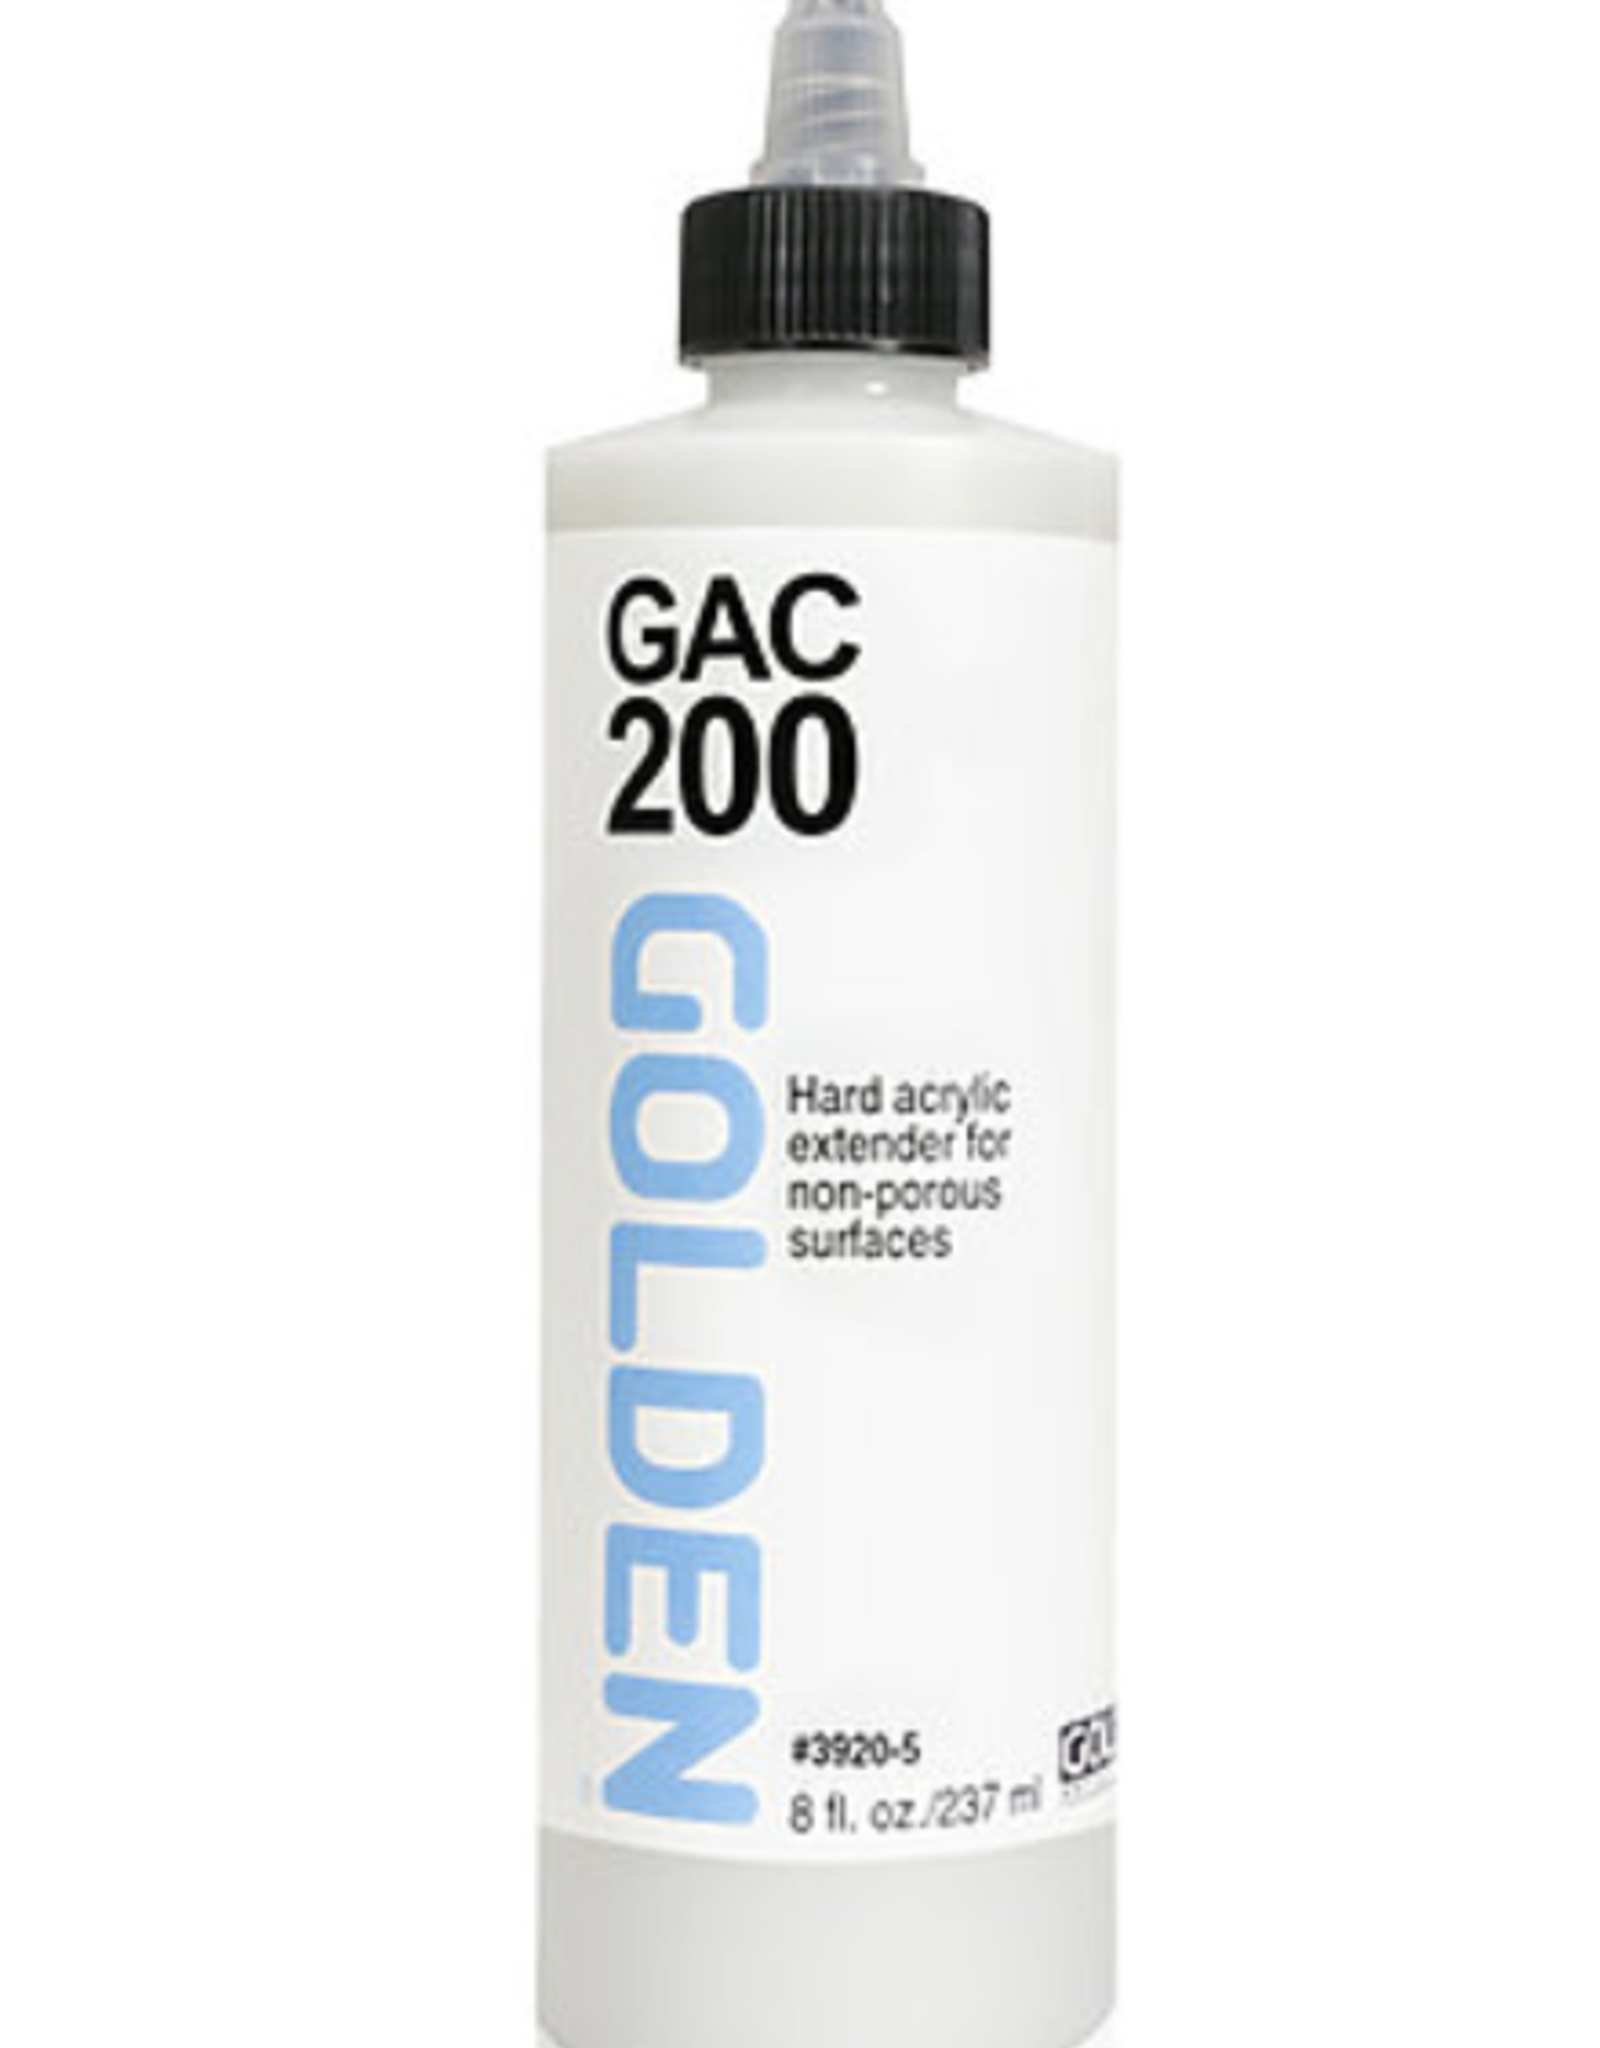 GAC 200, Golden Acrylic Polymer for Increasing Film Hardness, 8oz